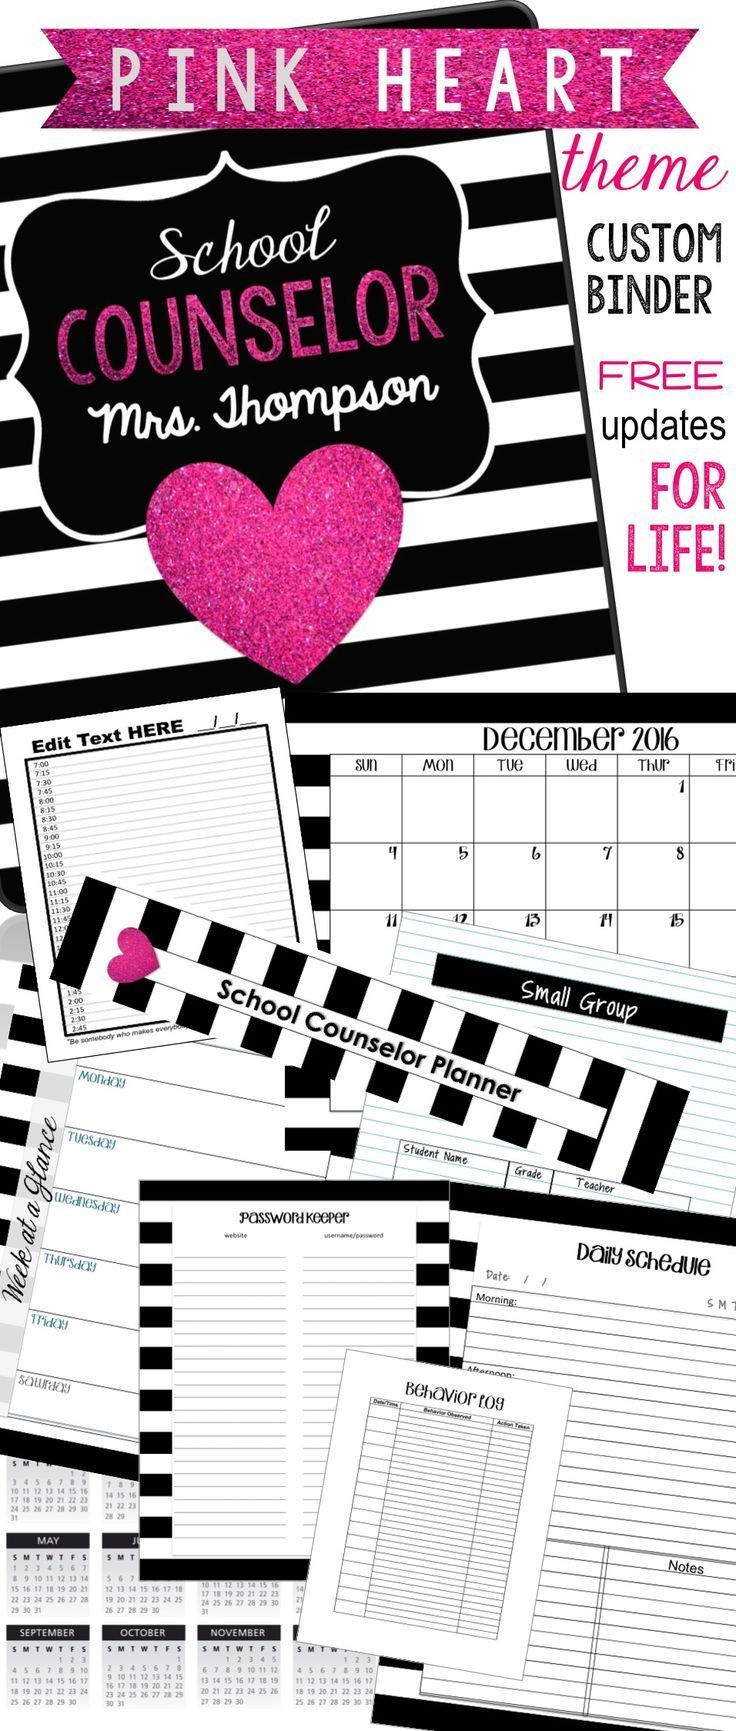 This ultimate counselor planner includes everything you need to stay organized and in style for 2016-2017!  Multiple designs... growing bundle.  Editable!  Updates for Life. Download every year for a new calendar.